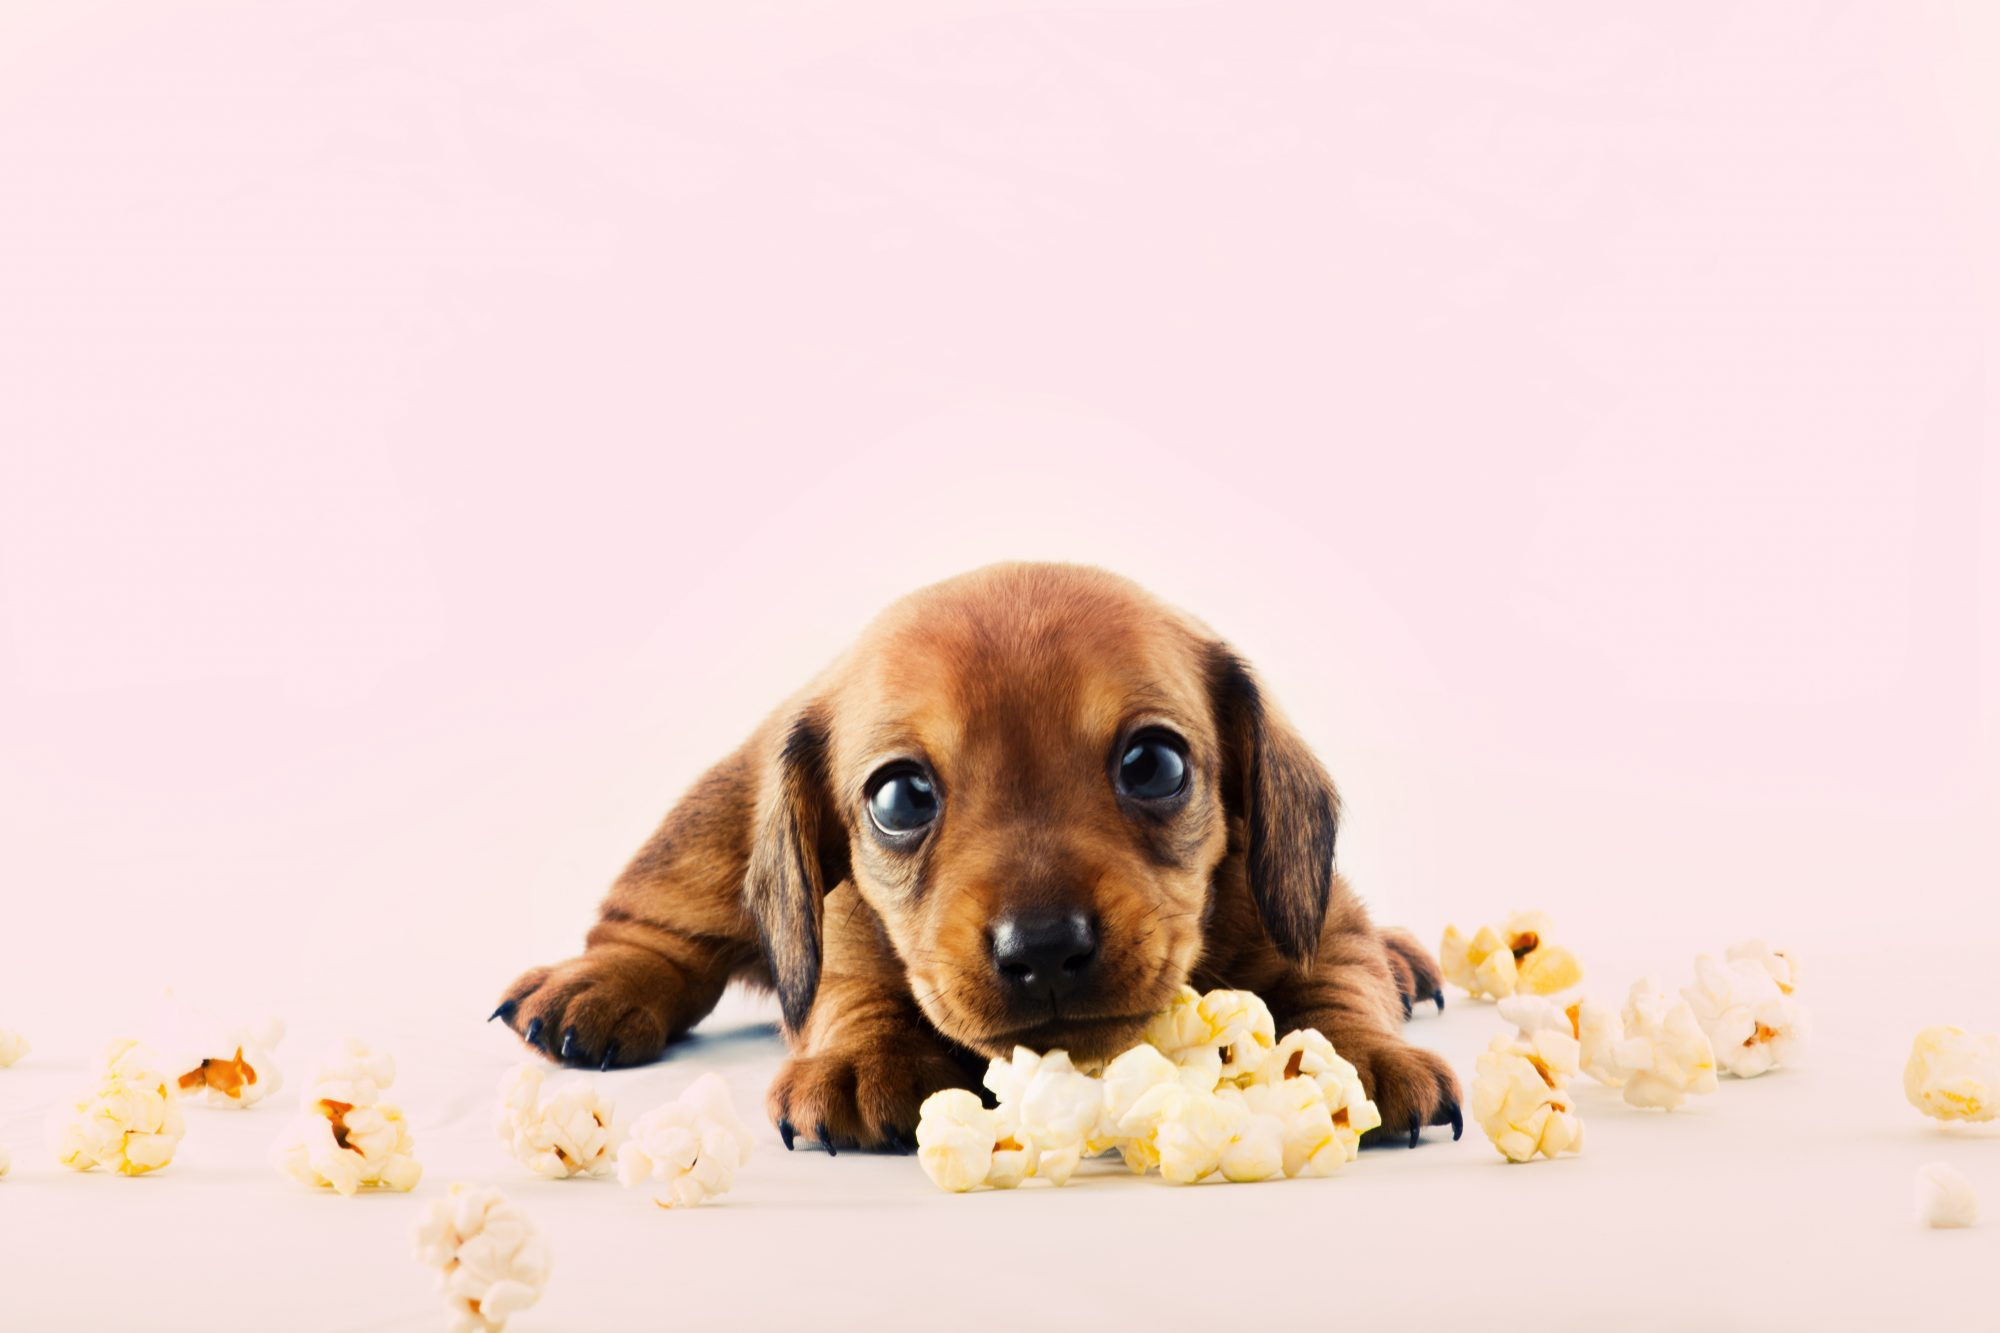 Puppy and Popcorn